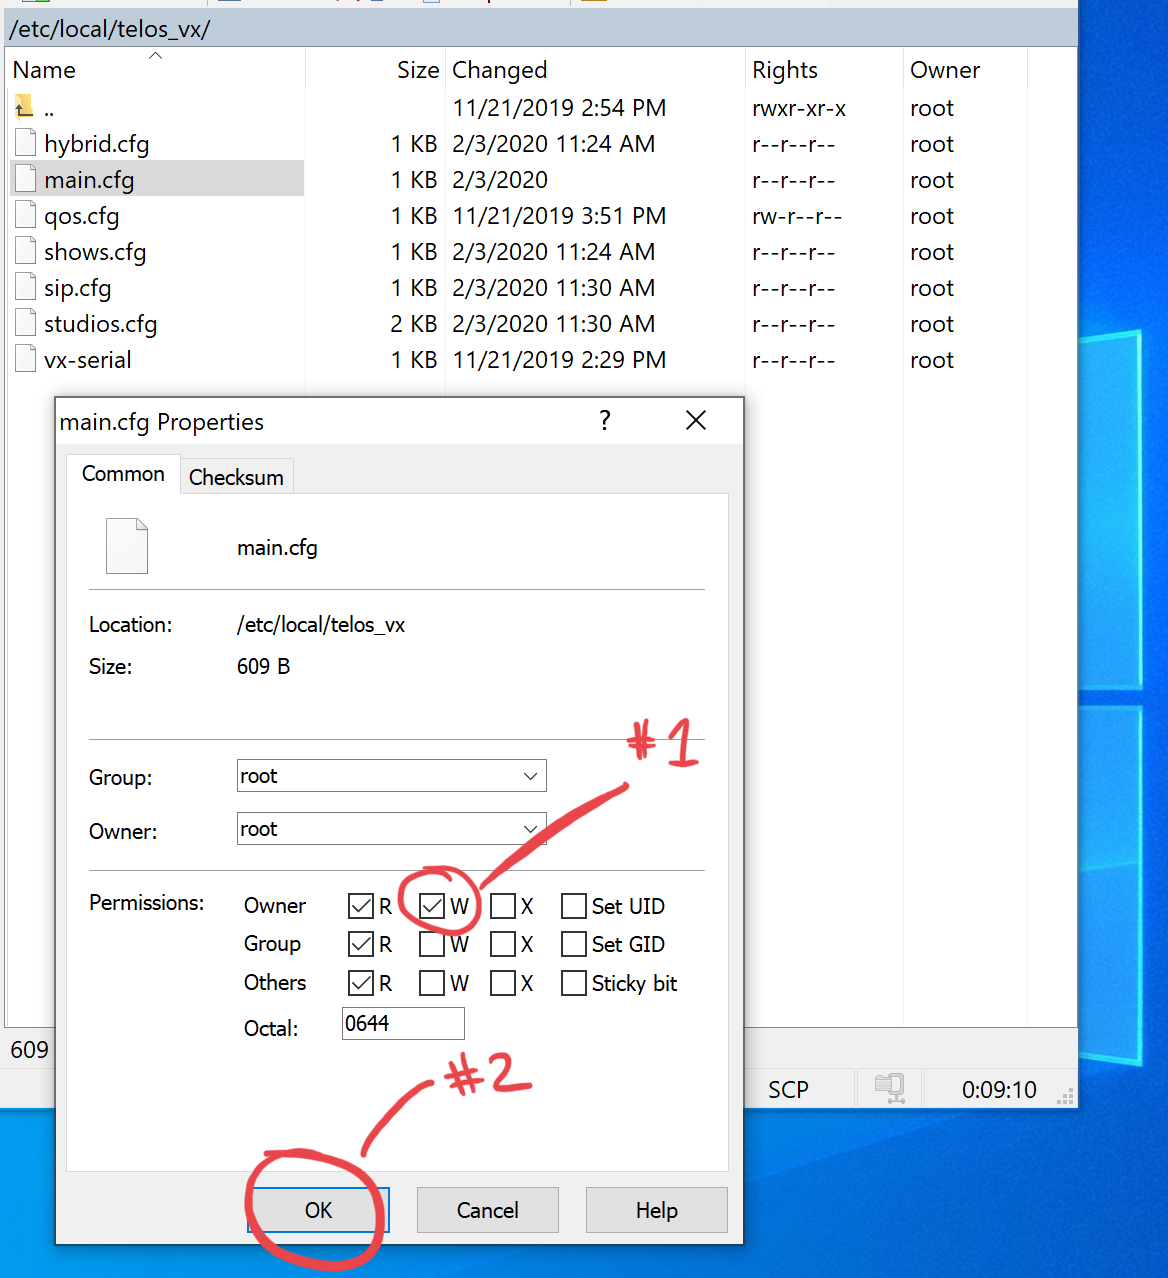 Screenshot showing the Write option in the Owners row and OK button